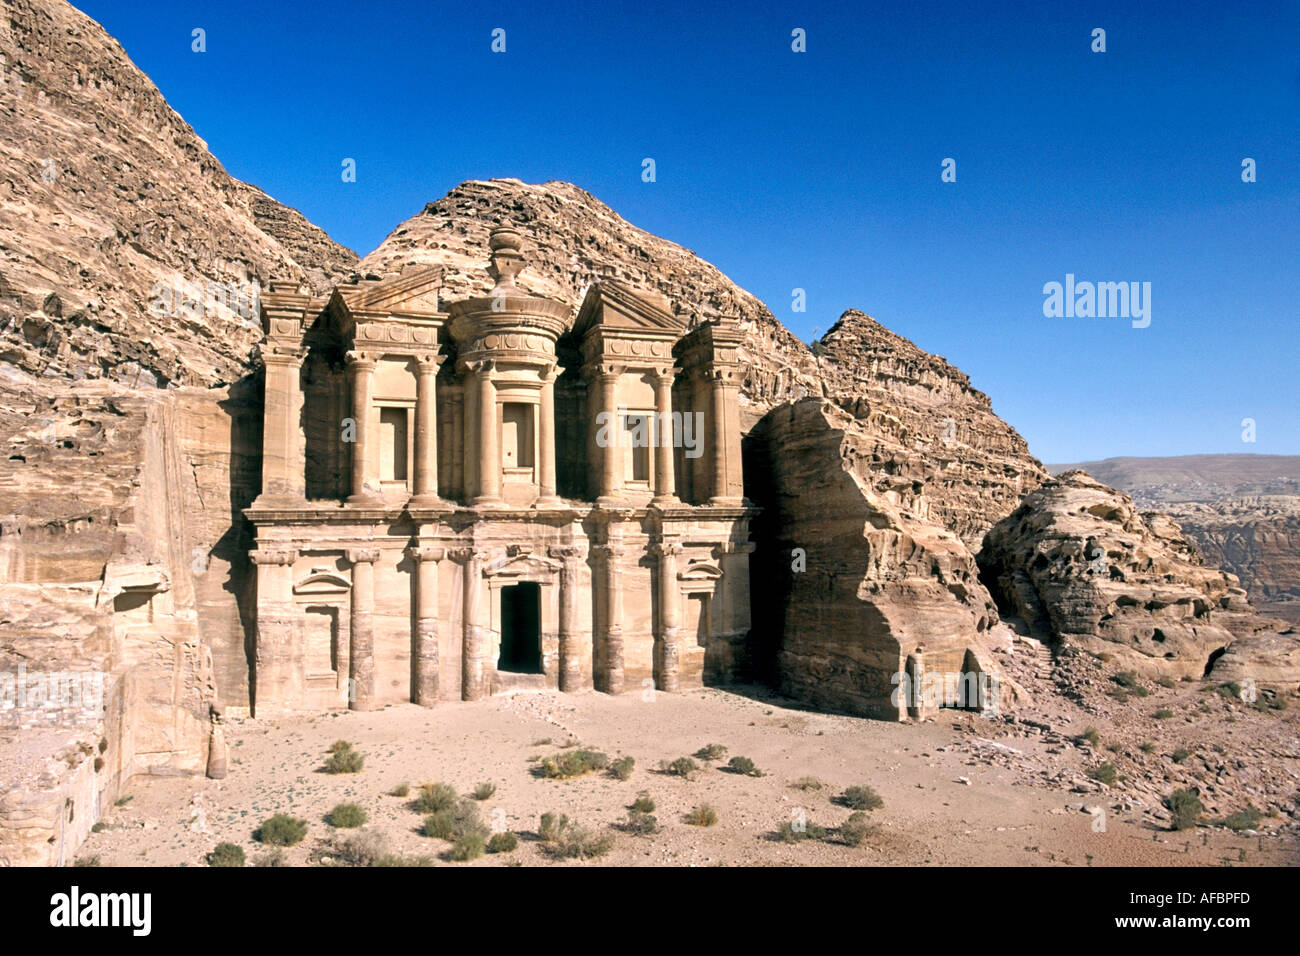 The monastery in the ancient stone city of petra in jordan stock the monastery in the ancient stone city of petra in jordan voltagebd Image collections